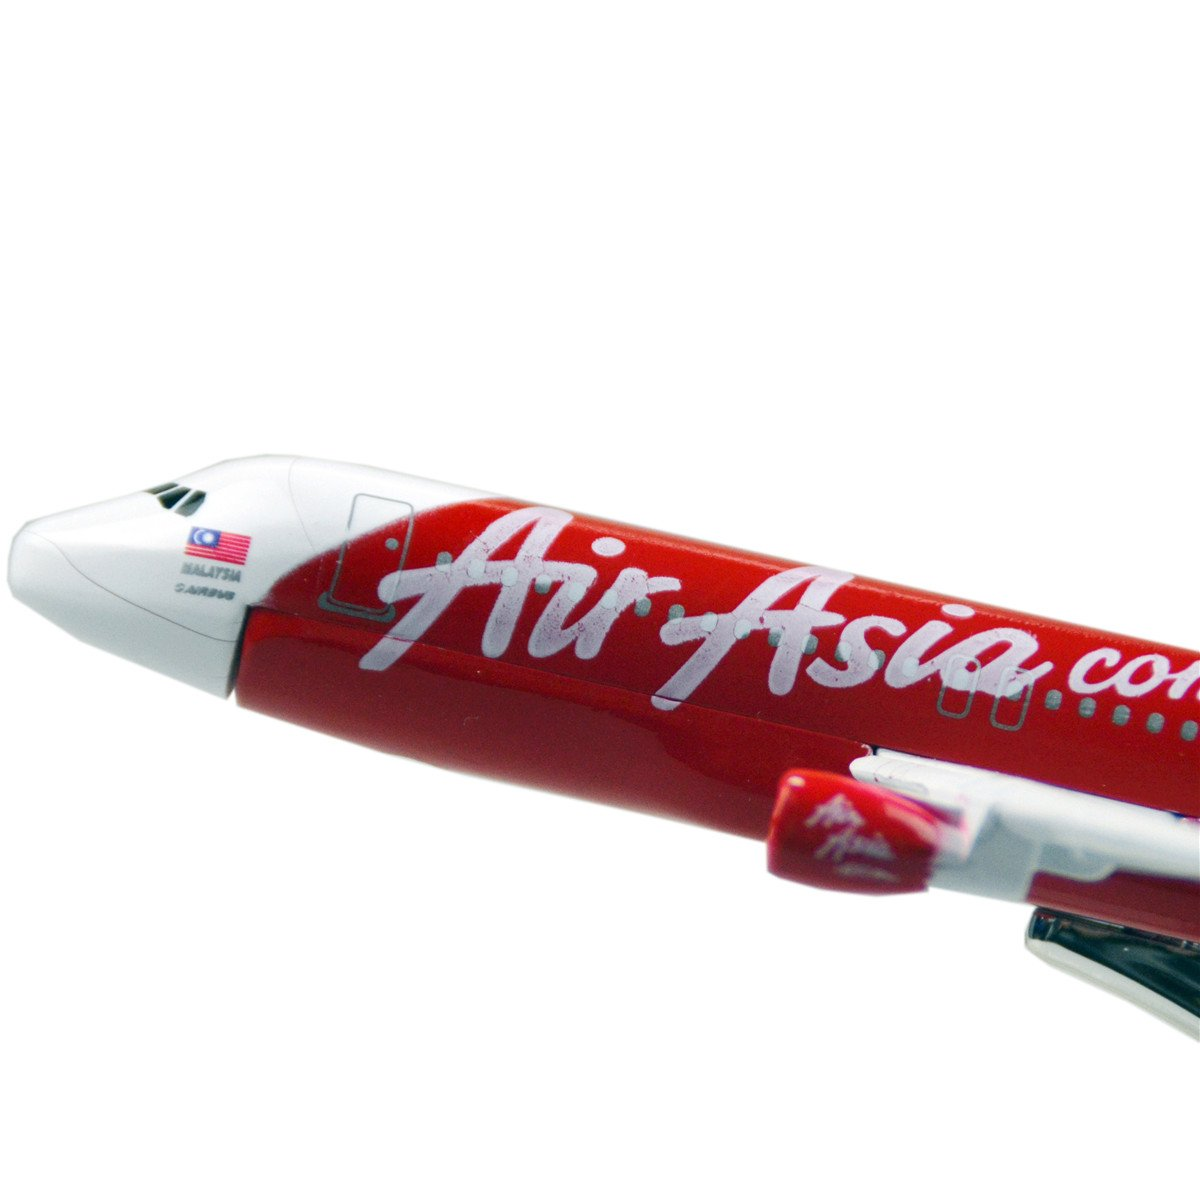 Buy Air Asia Now!